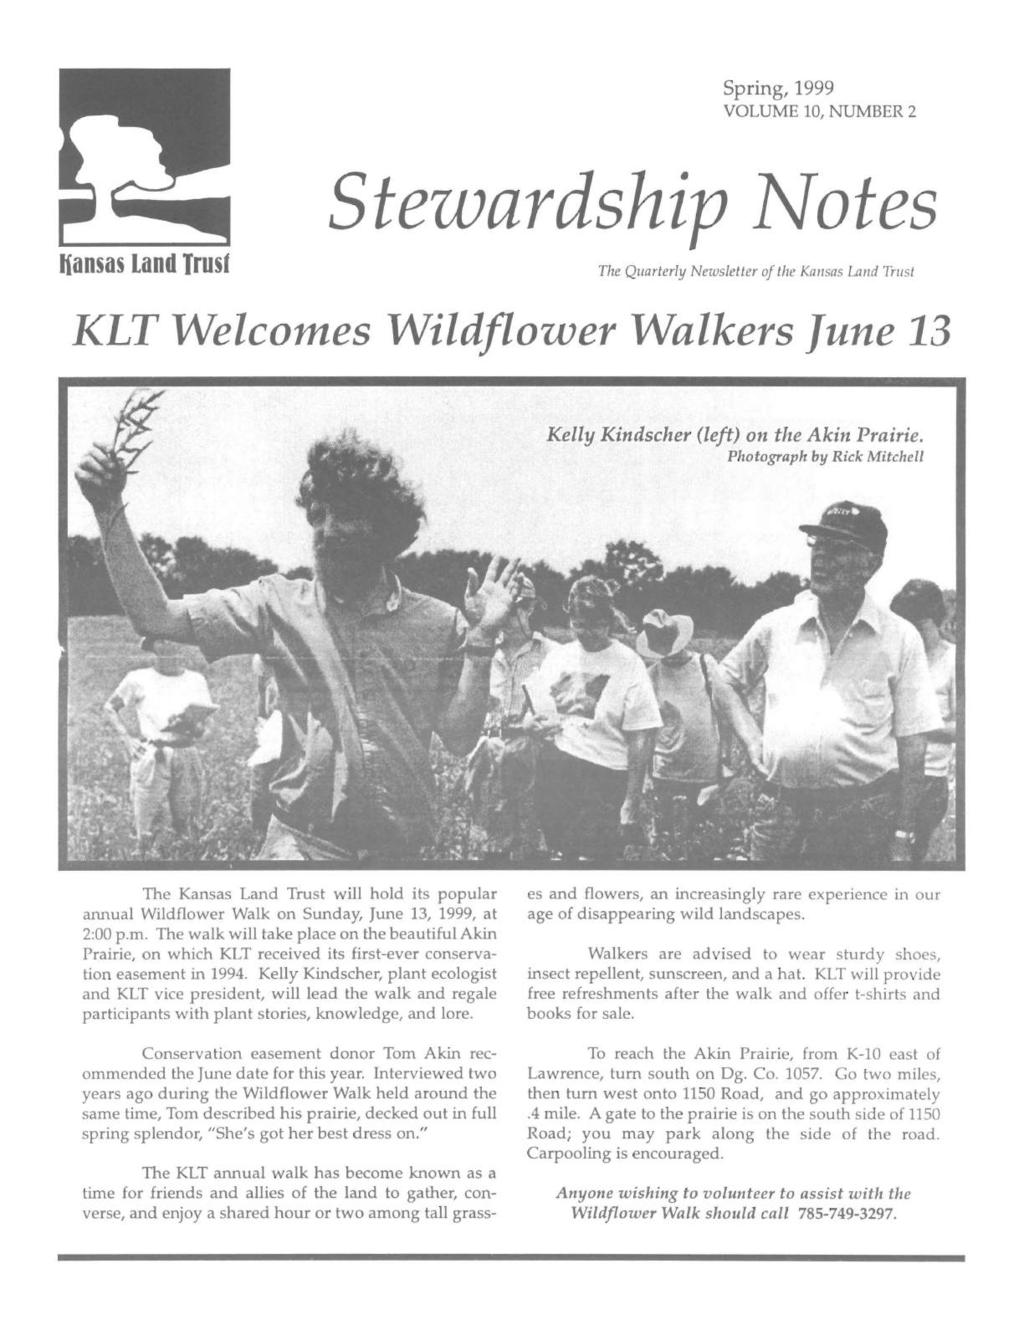 Spring, 1999 VOLUME 10, NUMBER 2 Hansas Land Trust Stezvardship ~otes The Quarterly Newsletter of the Ka1lsas Land Trust KLT Welcomes Wildflower Walkers June 13 Kelly Kindscher (left) on the Akin